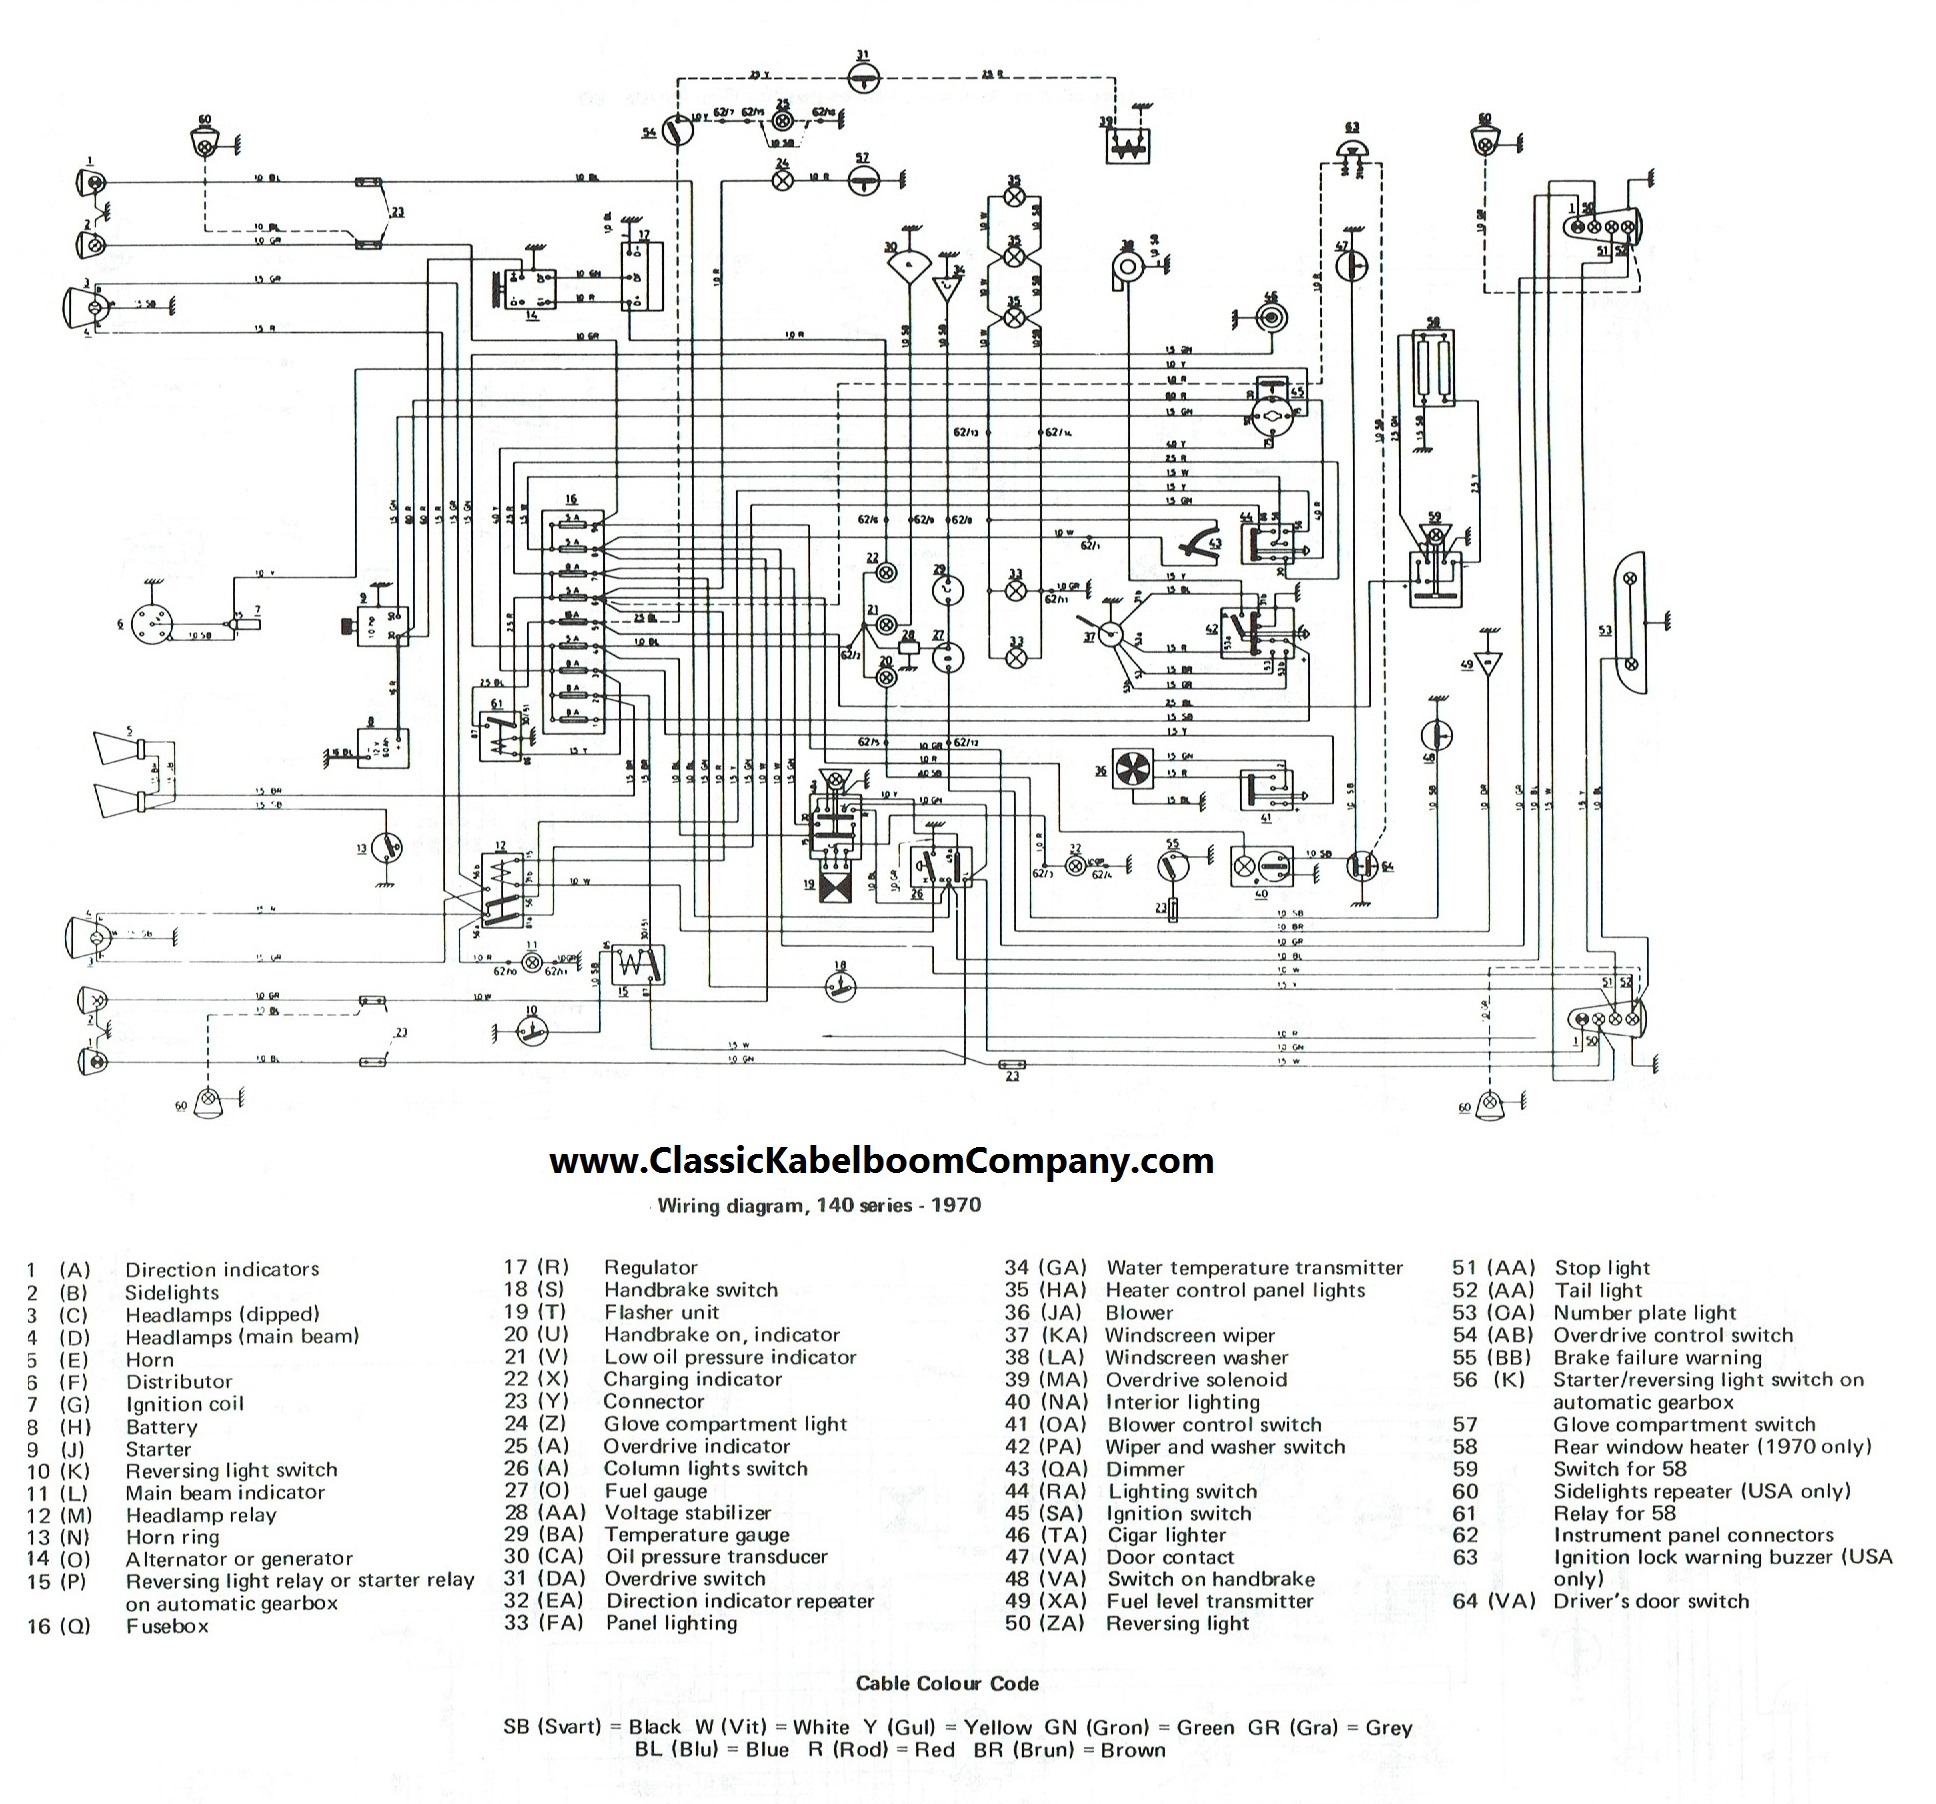 vol18?cdp=a classic kabelboom company elektrisch bedrading schema volvo volvo 240 instrument cluster wiring diagram at cos-gaming.co